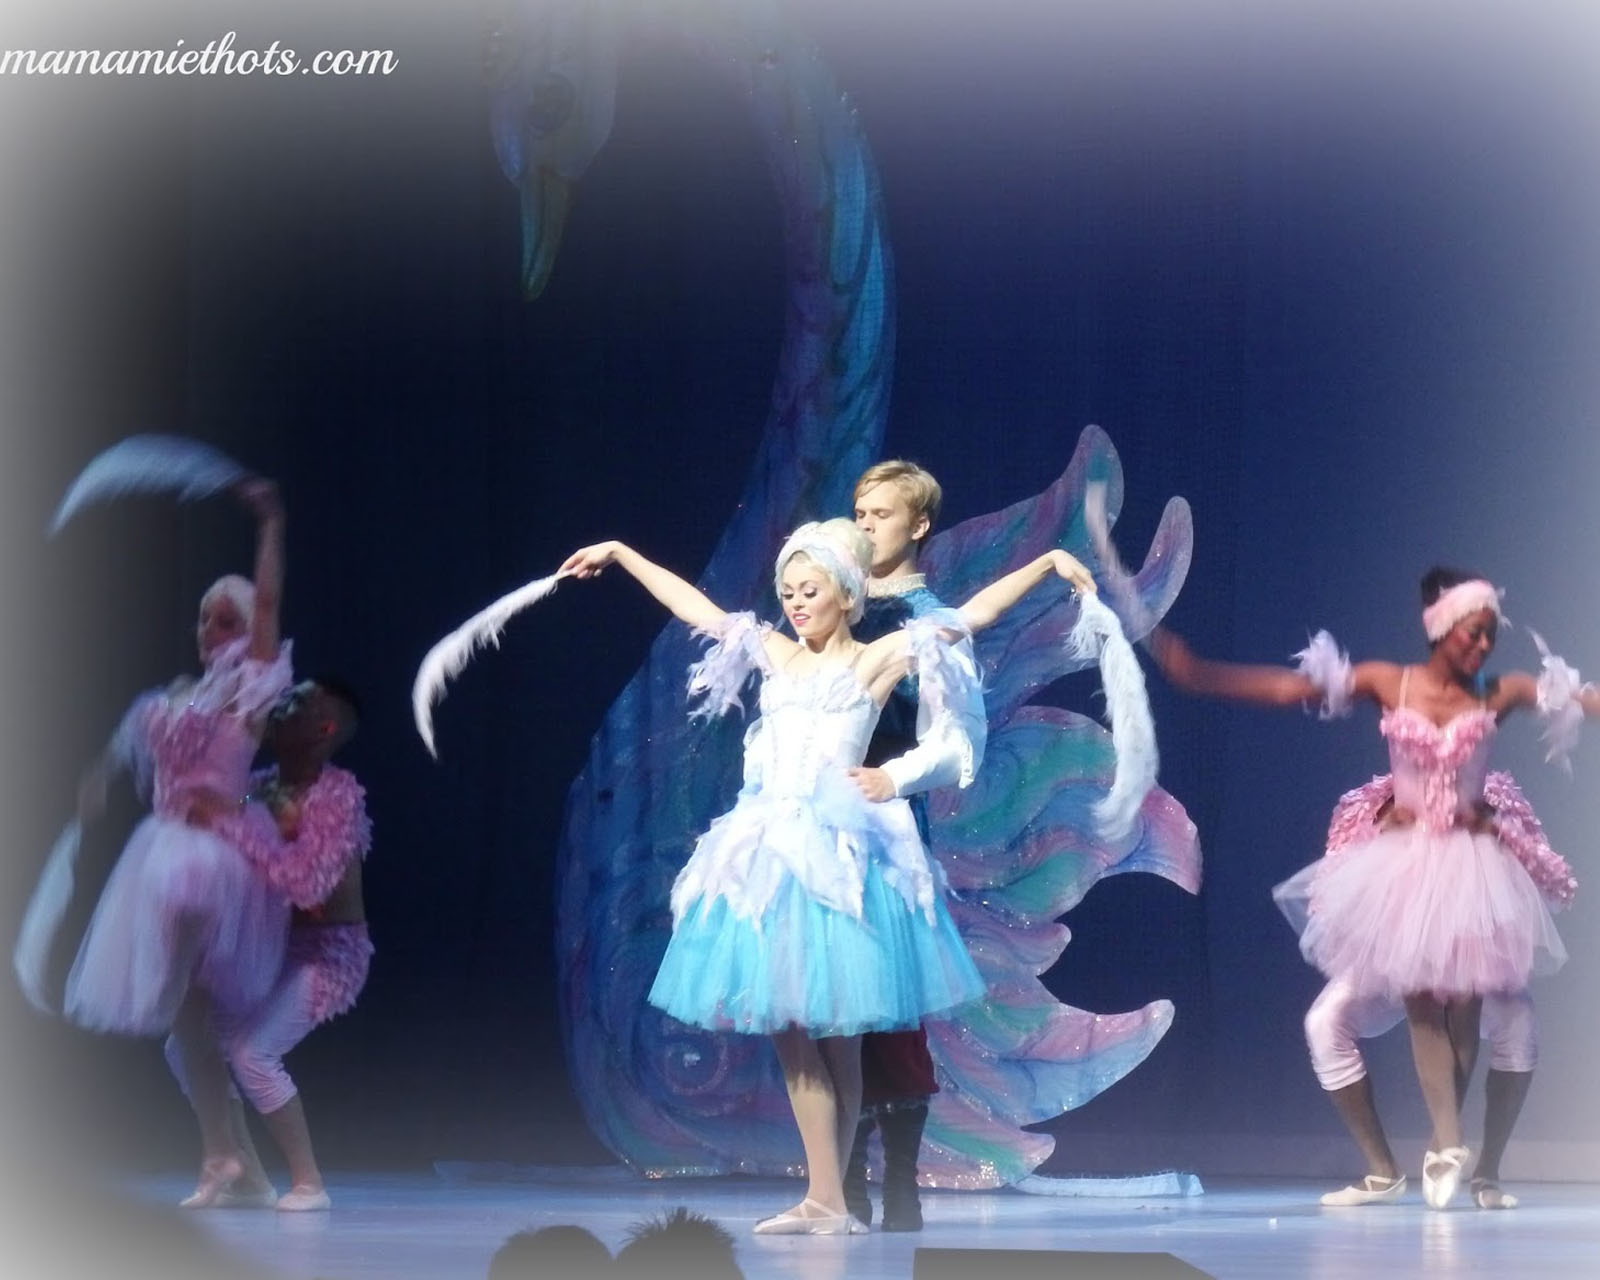 Barbie Swan Lake Ballet. Flashback dance number.